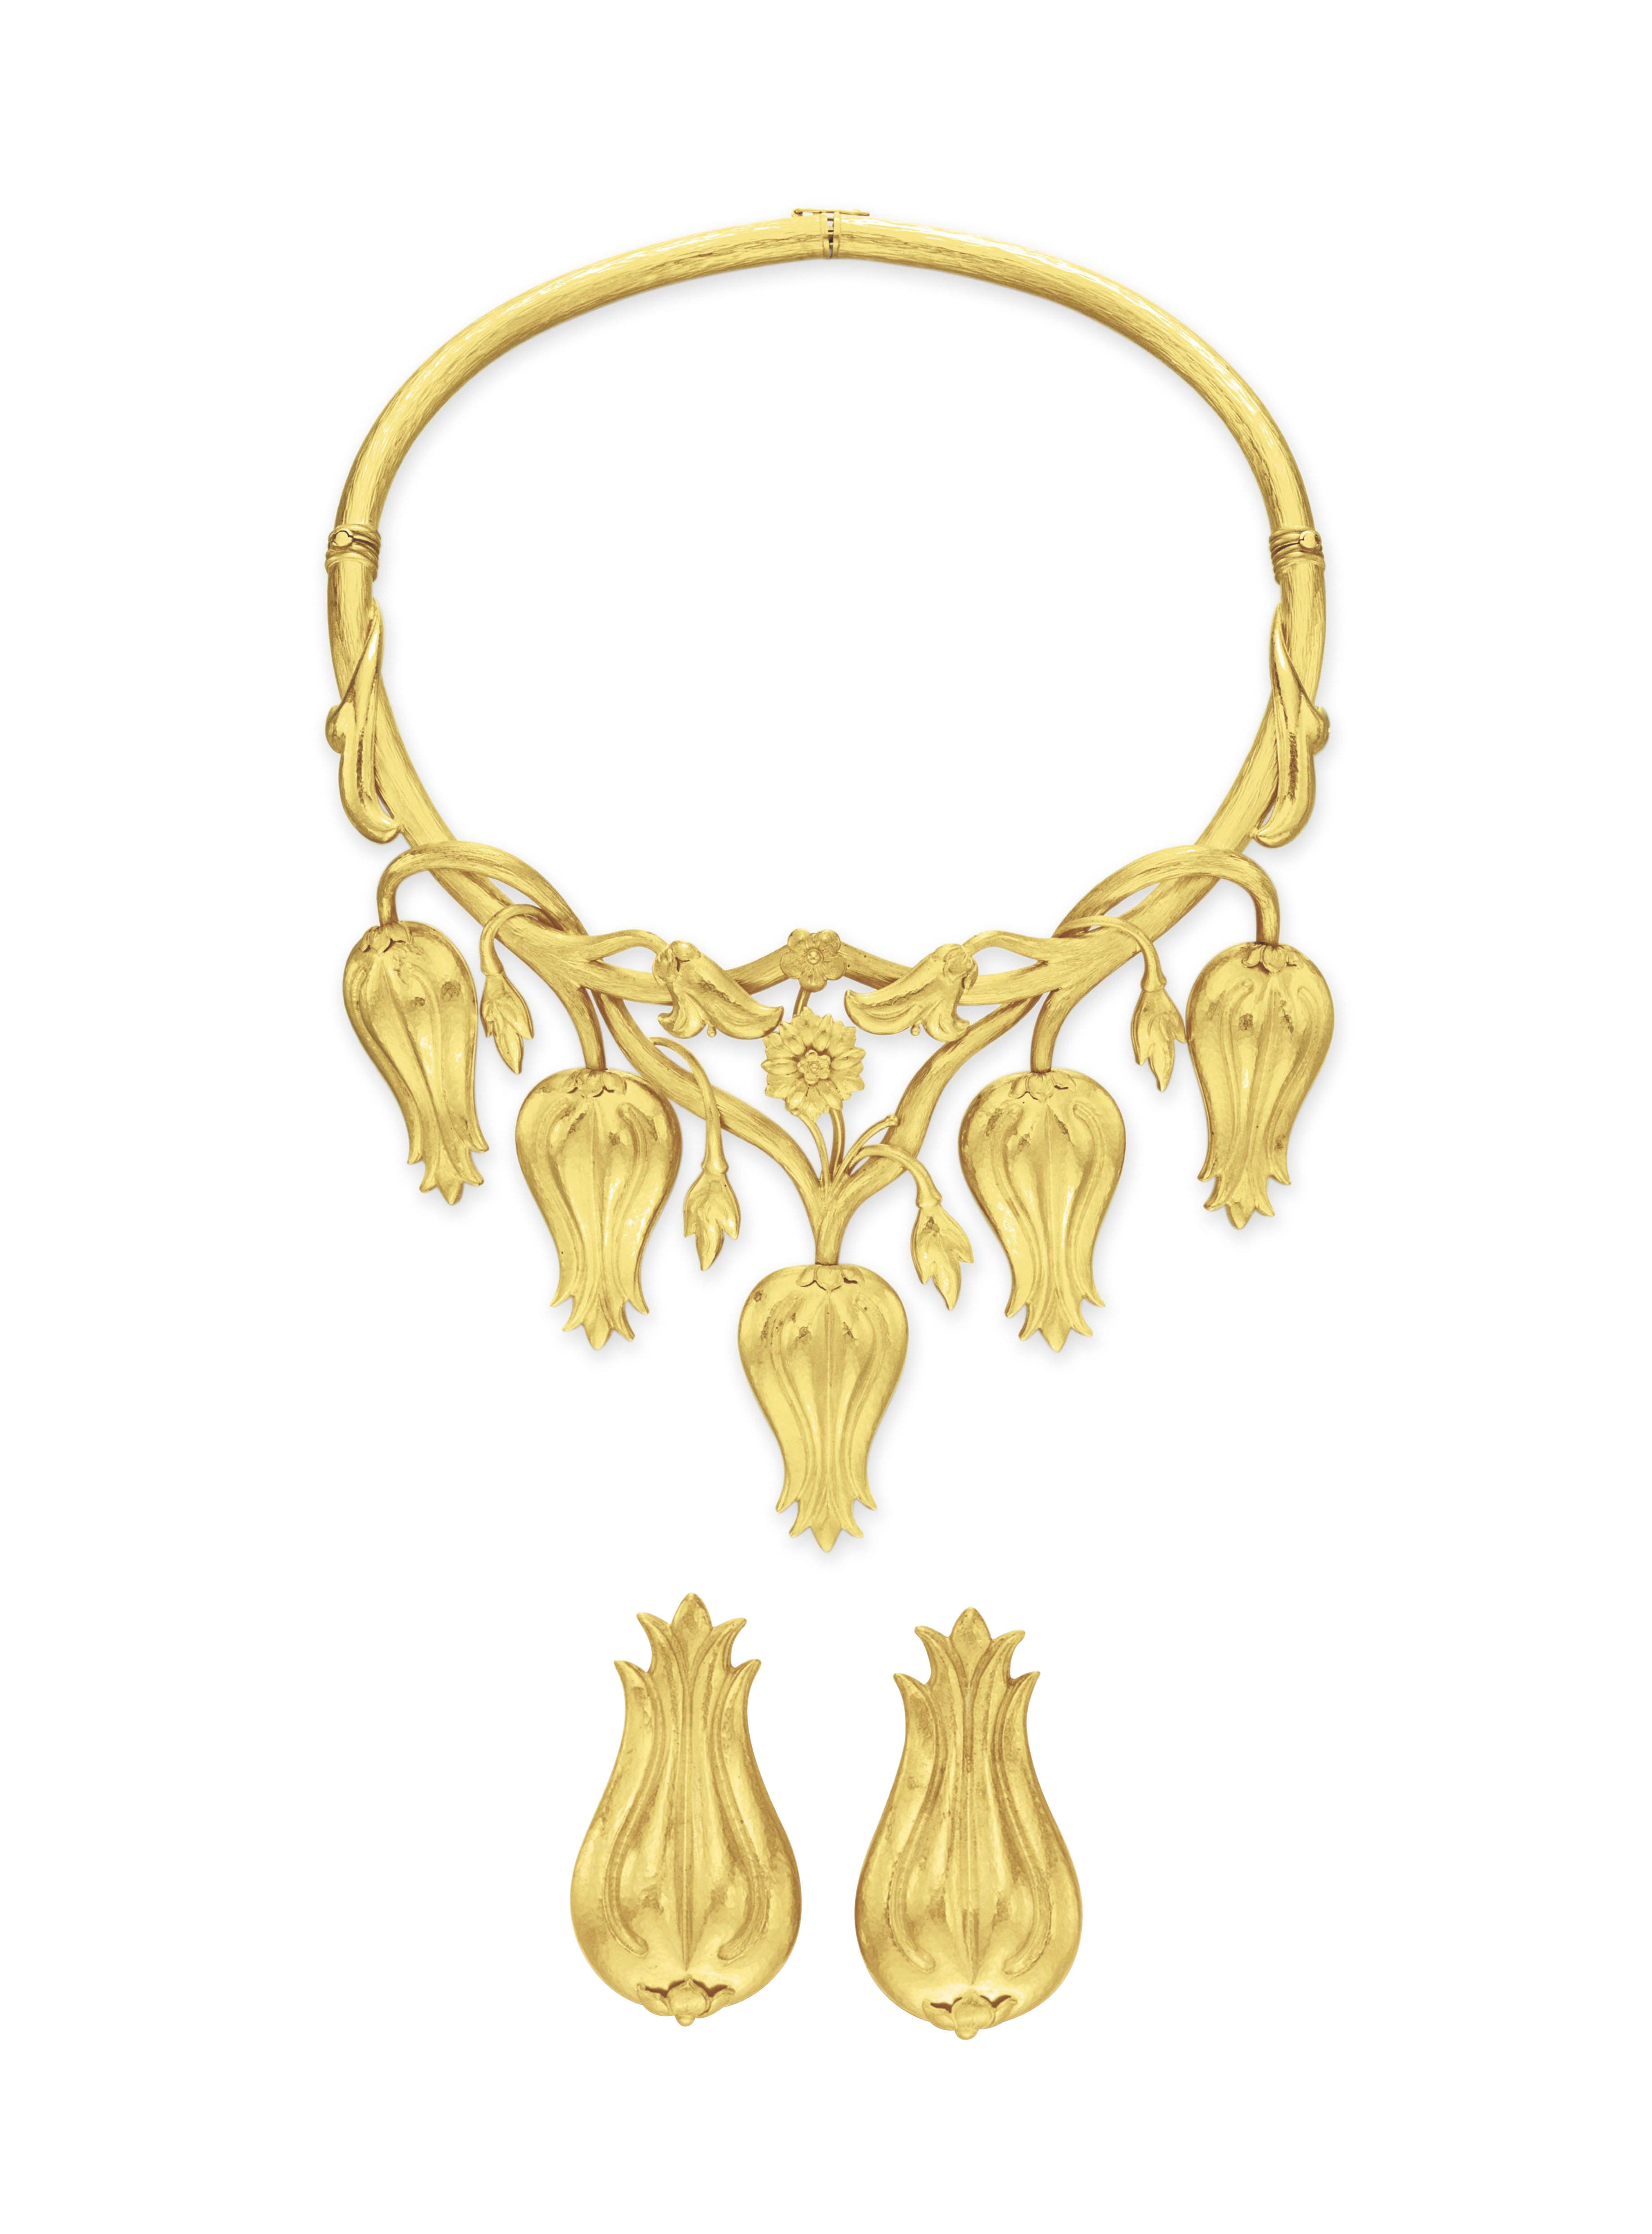 A SET OF GOLD JEWELRY, BY ILIAS LALAOUNIS